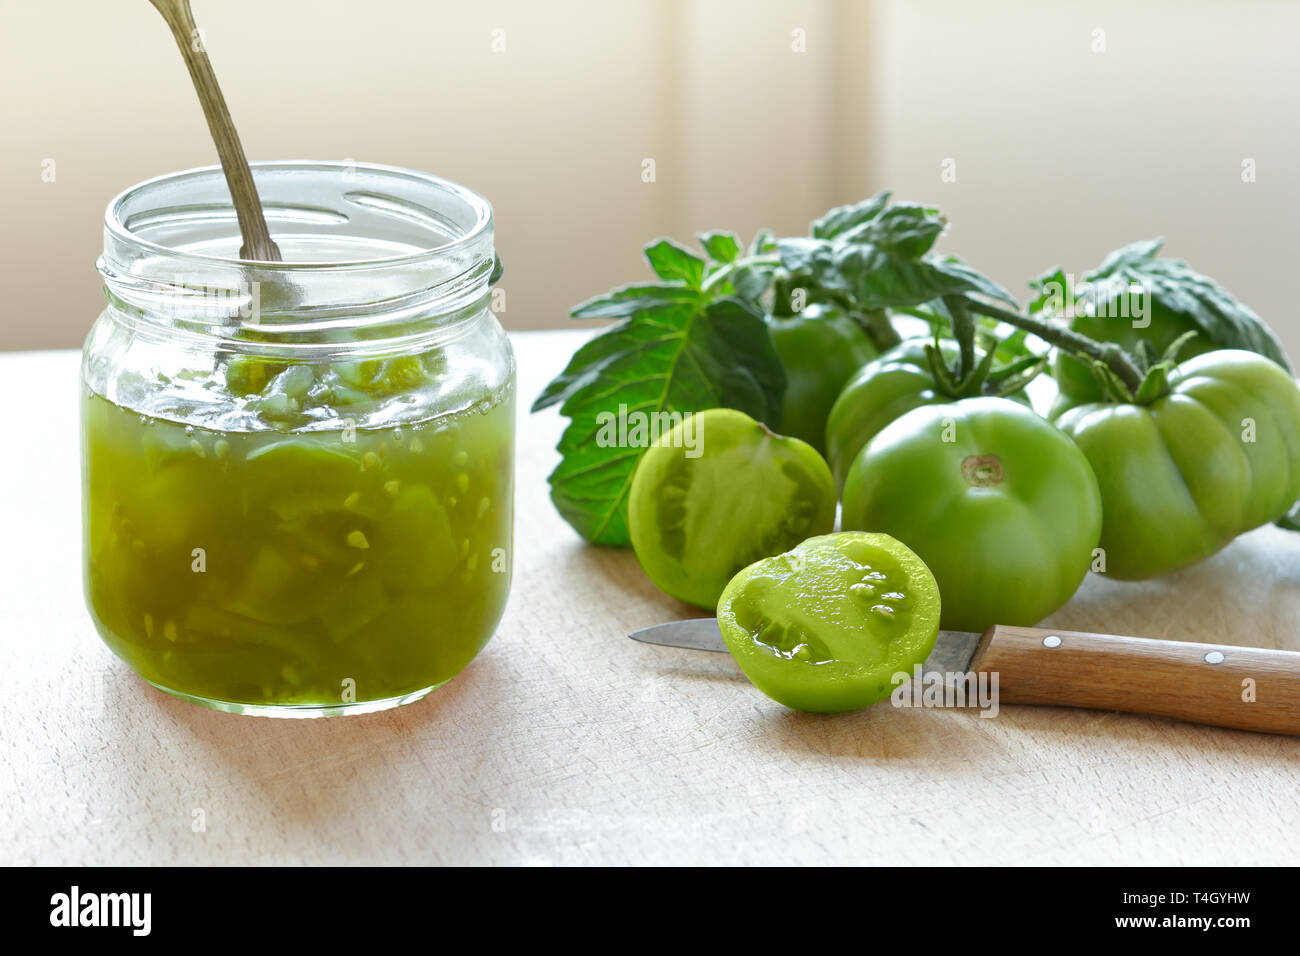 Green tomato jam or chutney in a glass jar with vintage spoon, home canning concept Stock Photo